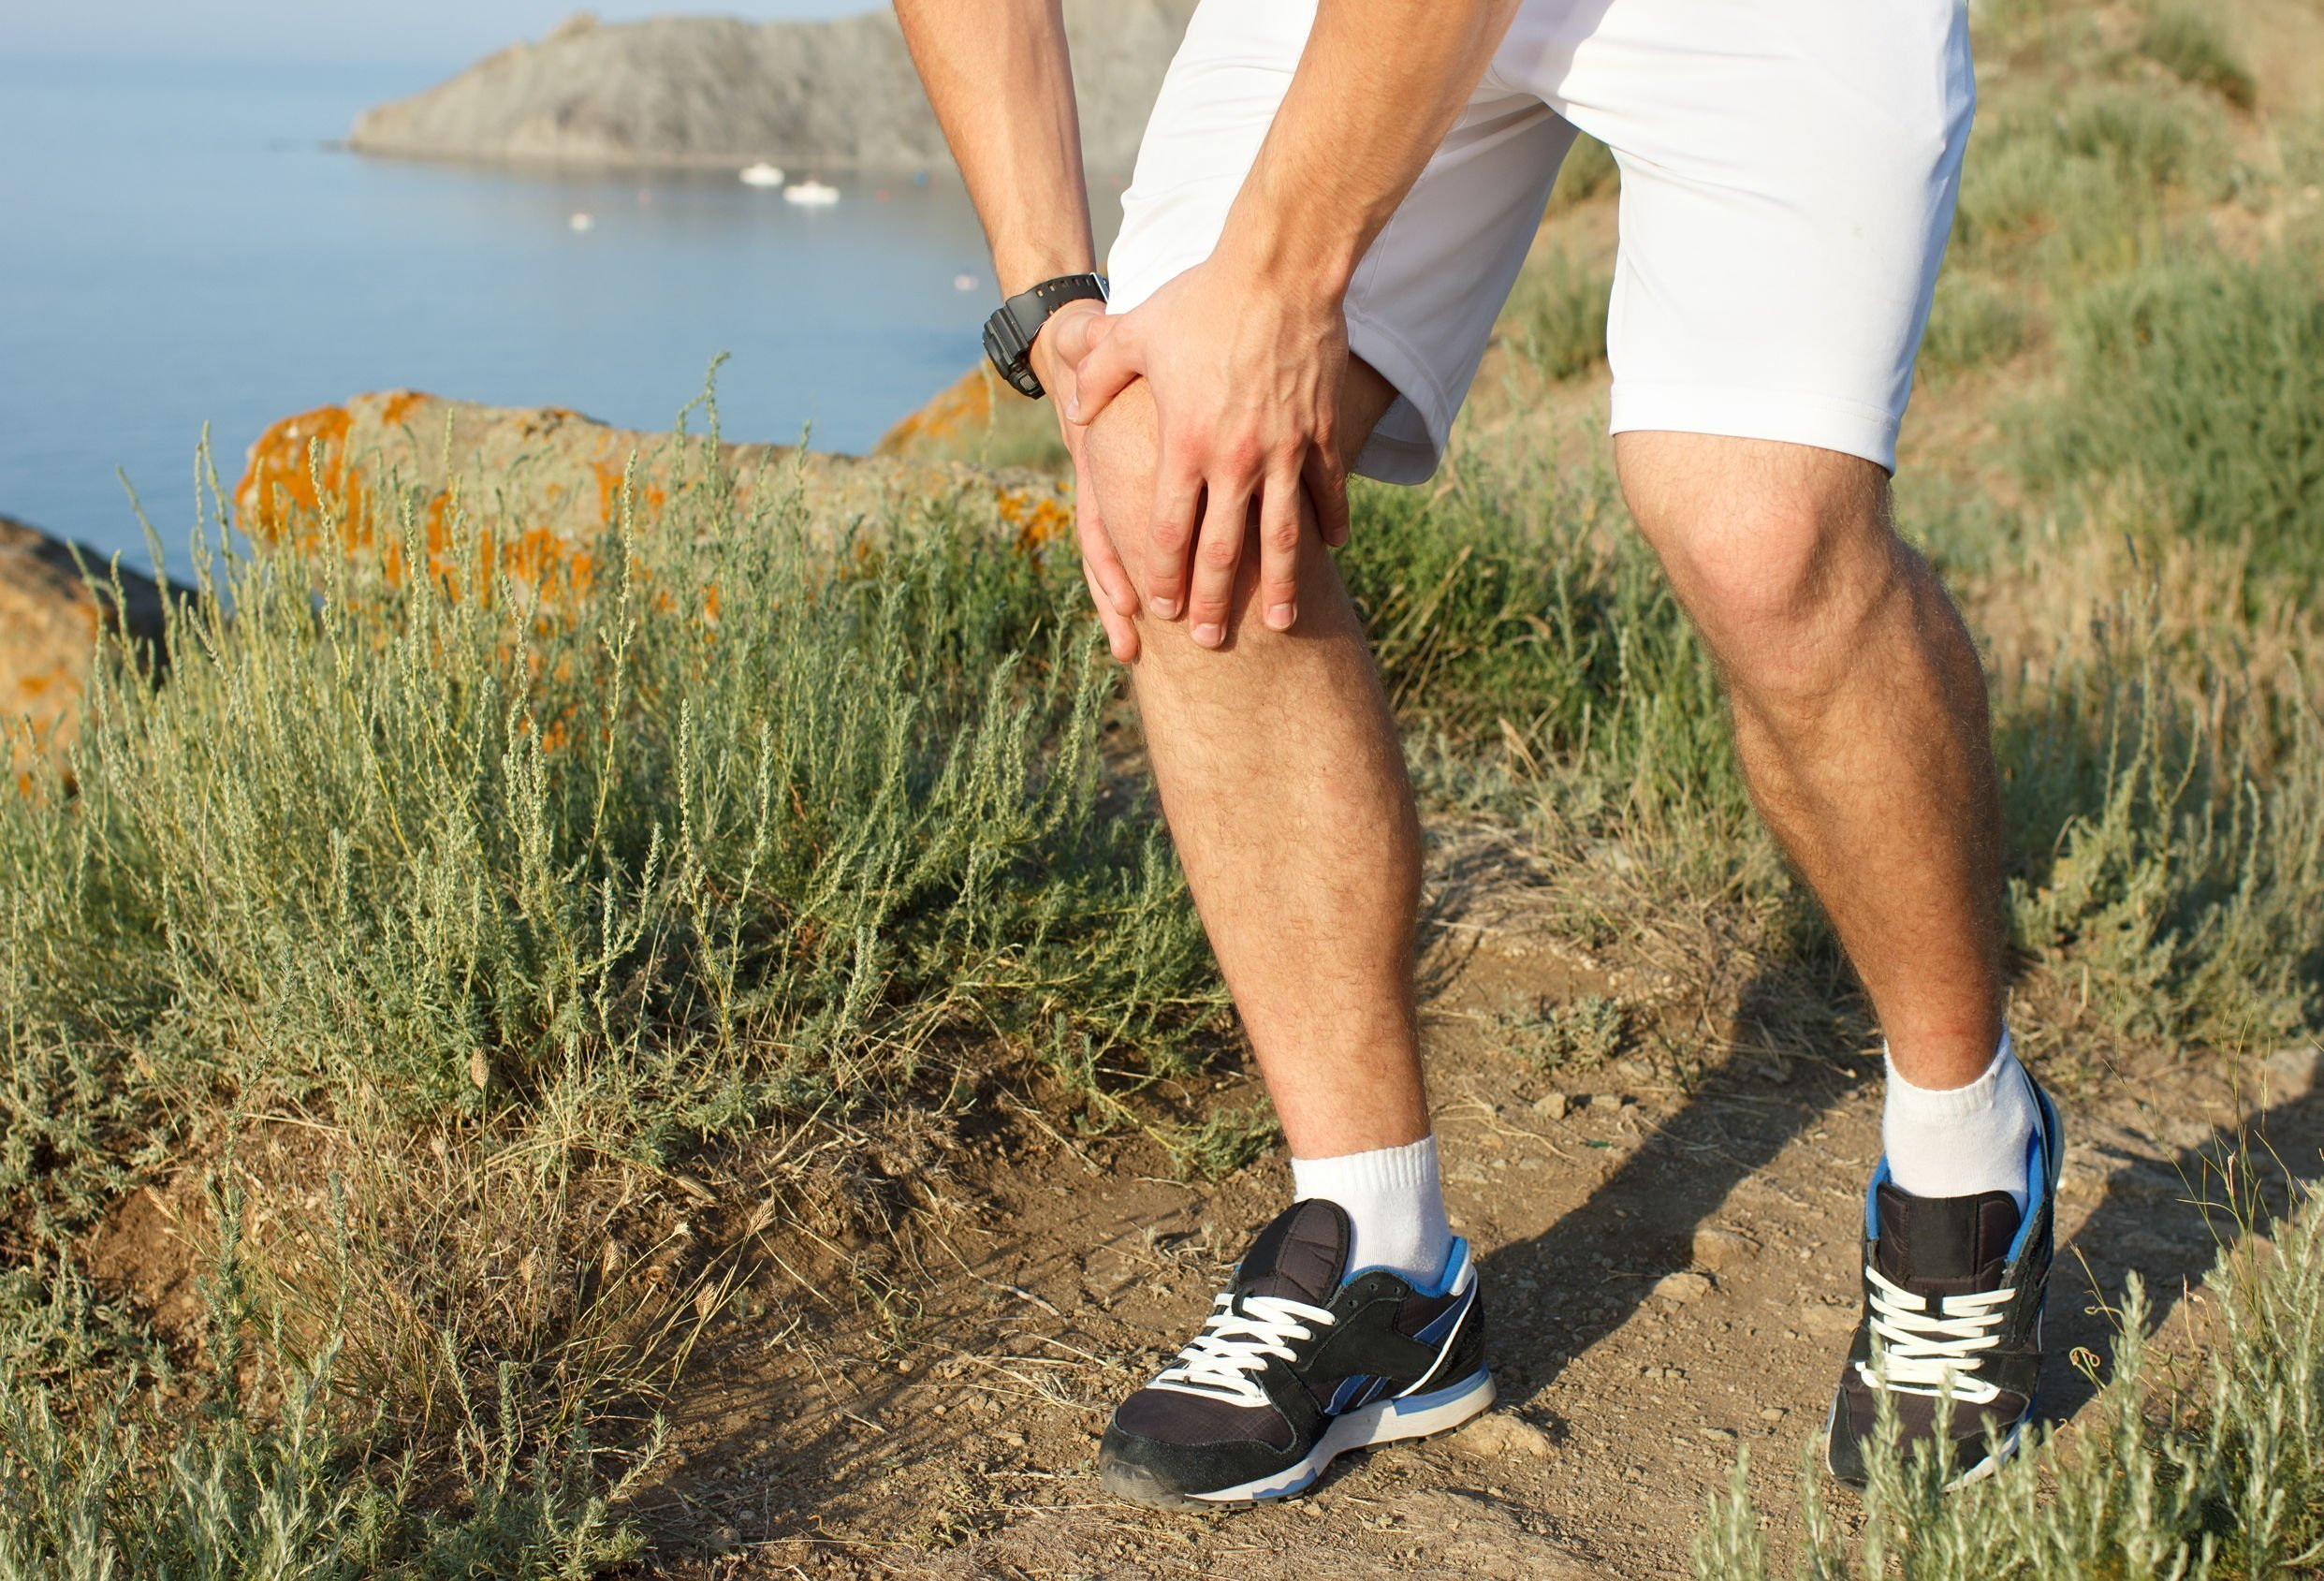 Knee Pain After Walking | Feel Good Life with Coach Todd